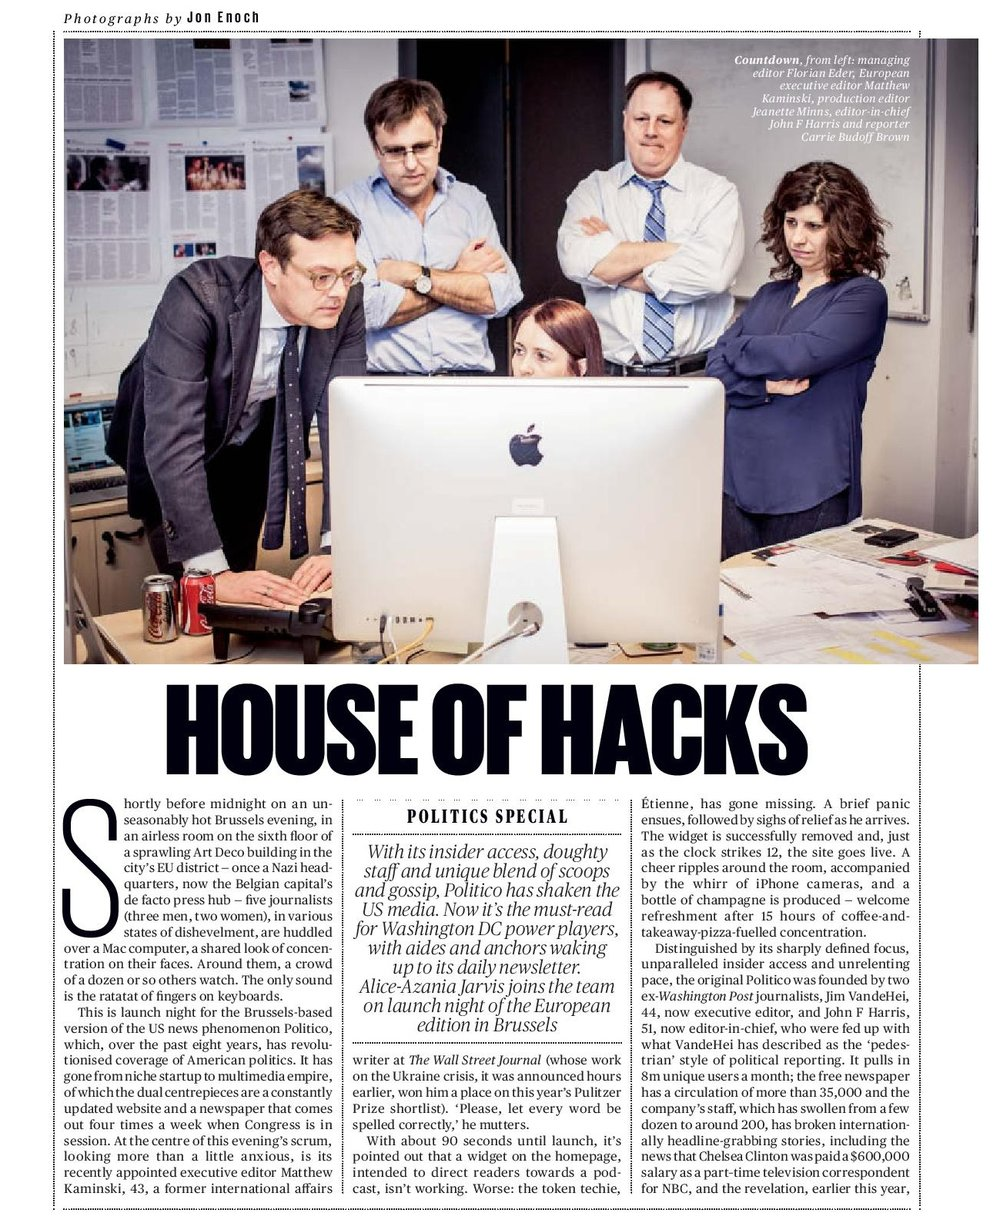 House of hacks - Shortly before midnight on an unseasonably hot Brussels evening, in an airless room on the sixth floor of a sprawling Art Deco building in the city's EU district — once a Nazi headquarters, now the Belgian capital's de facto press hub — five journalists , in various states of dishevelment, are huddled over a Mac computer. Around them, a crowd of a dozen or so others watch. The only sound is the ratatat of fingers on keyboards…READ MORE